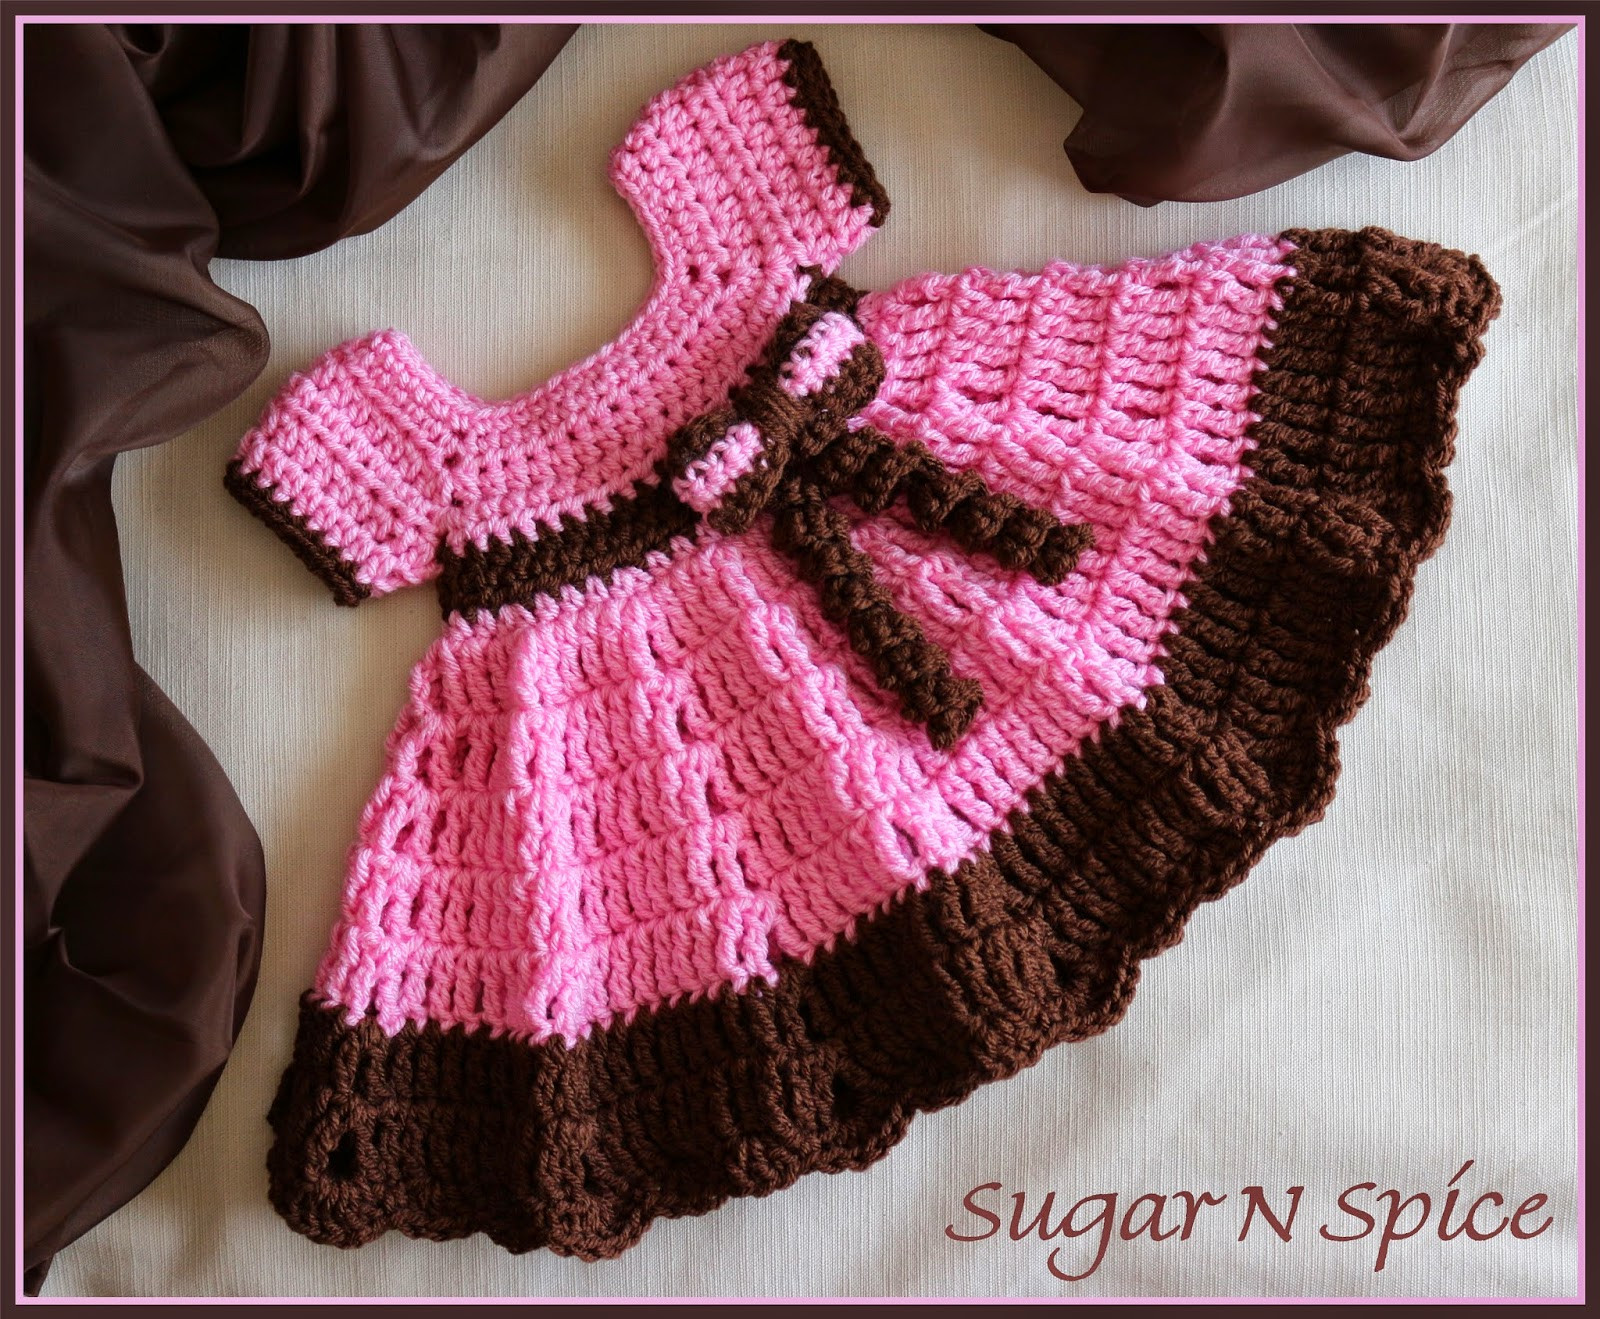 Best Of Easy Crochet Baby Dress Patterns Dress Up Your Pretty Crochet Dress for Baby Of Amazing 42 Photos Crochet Dress for Baby